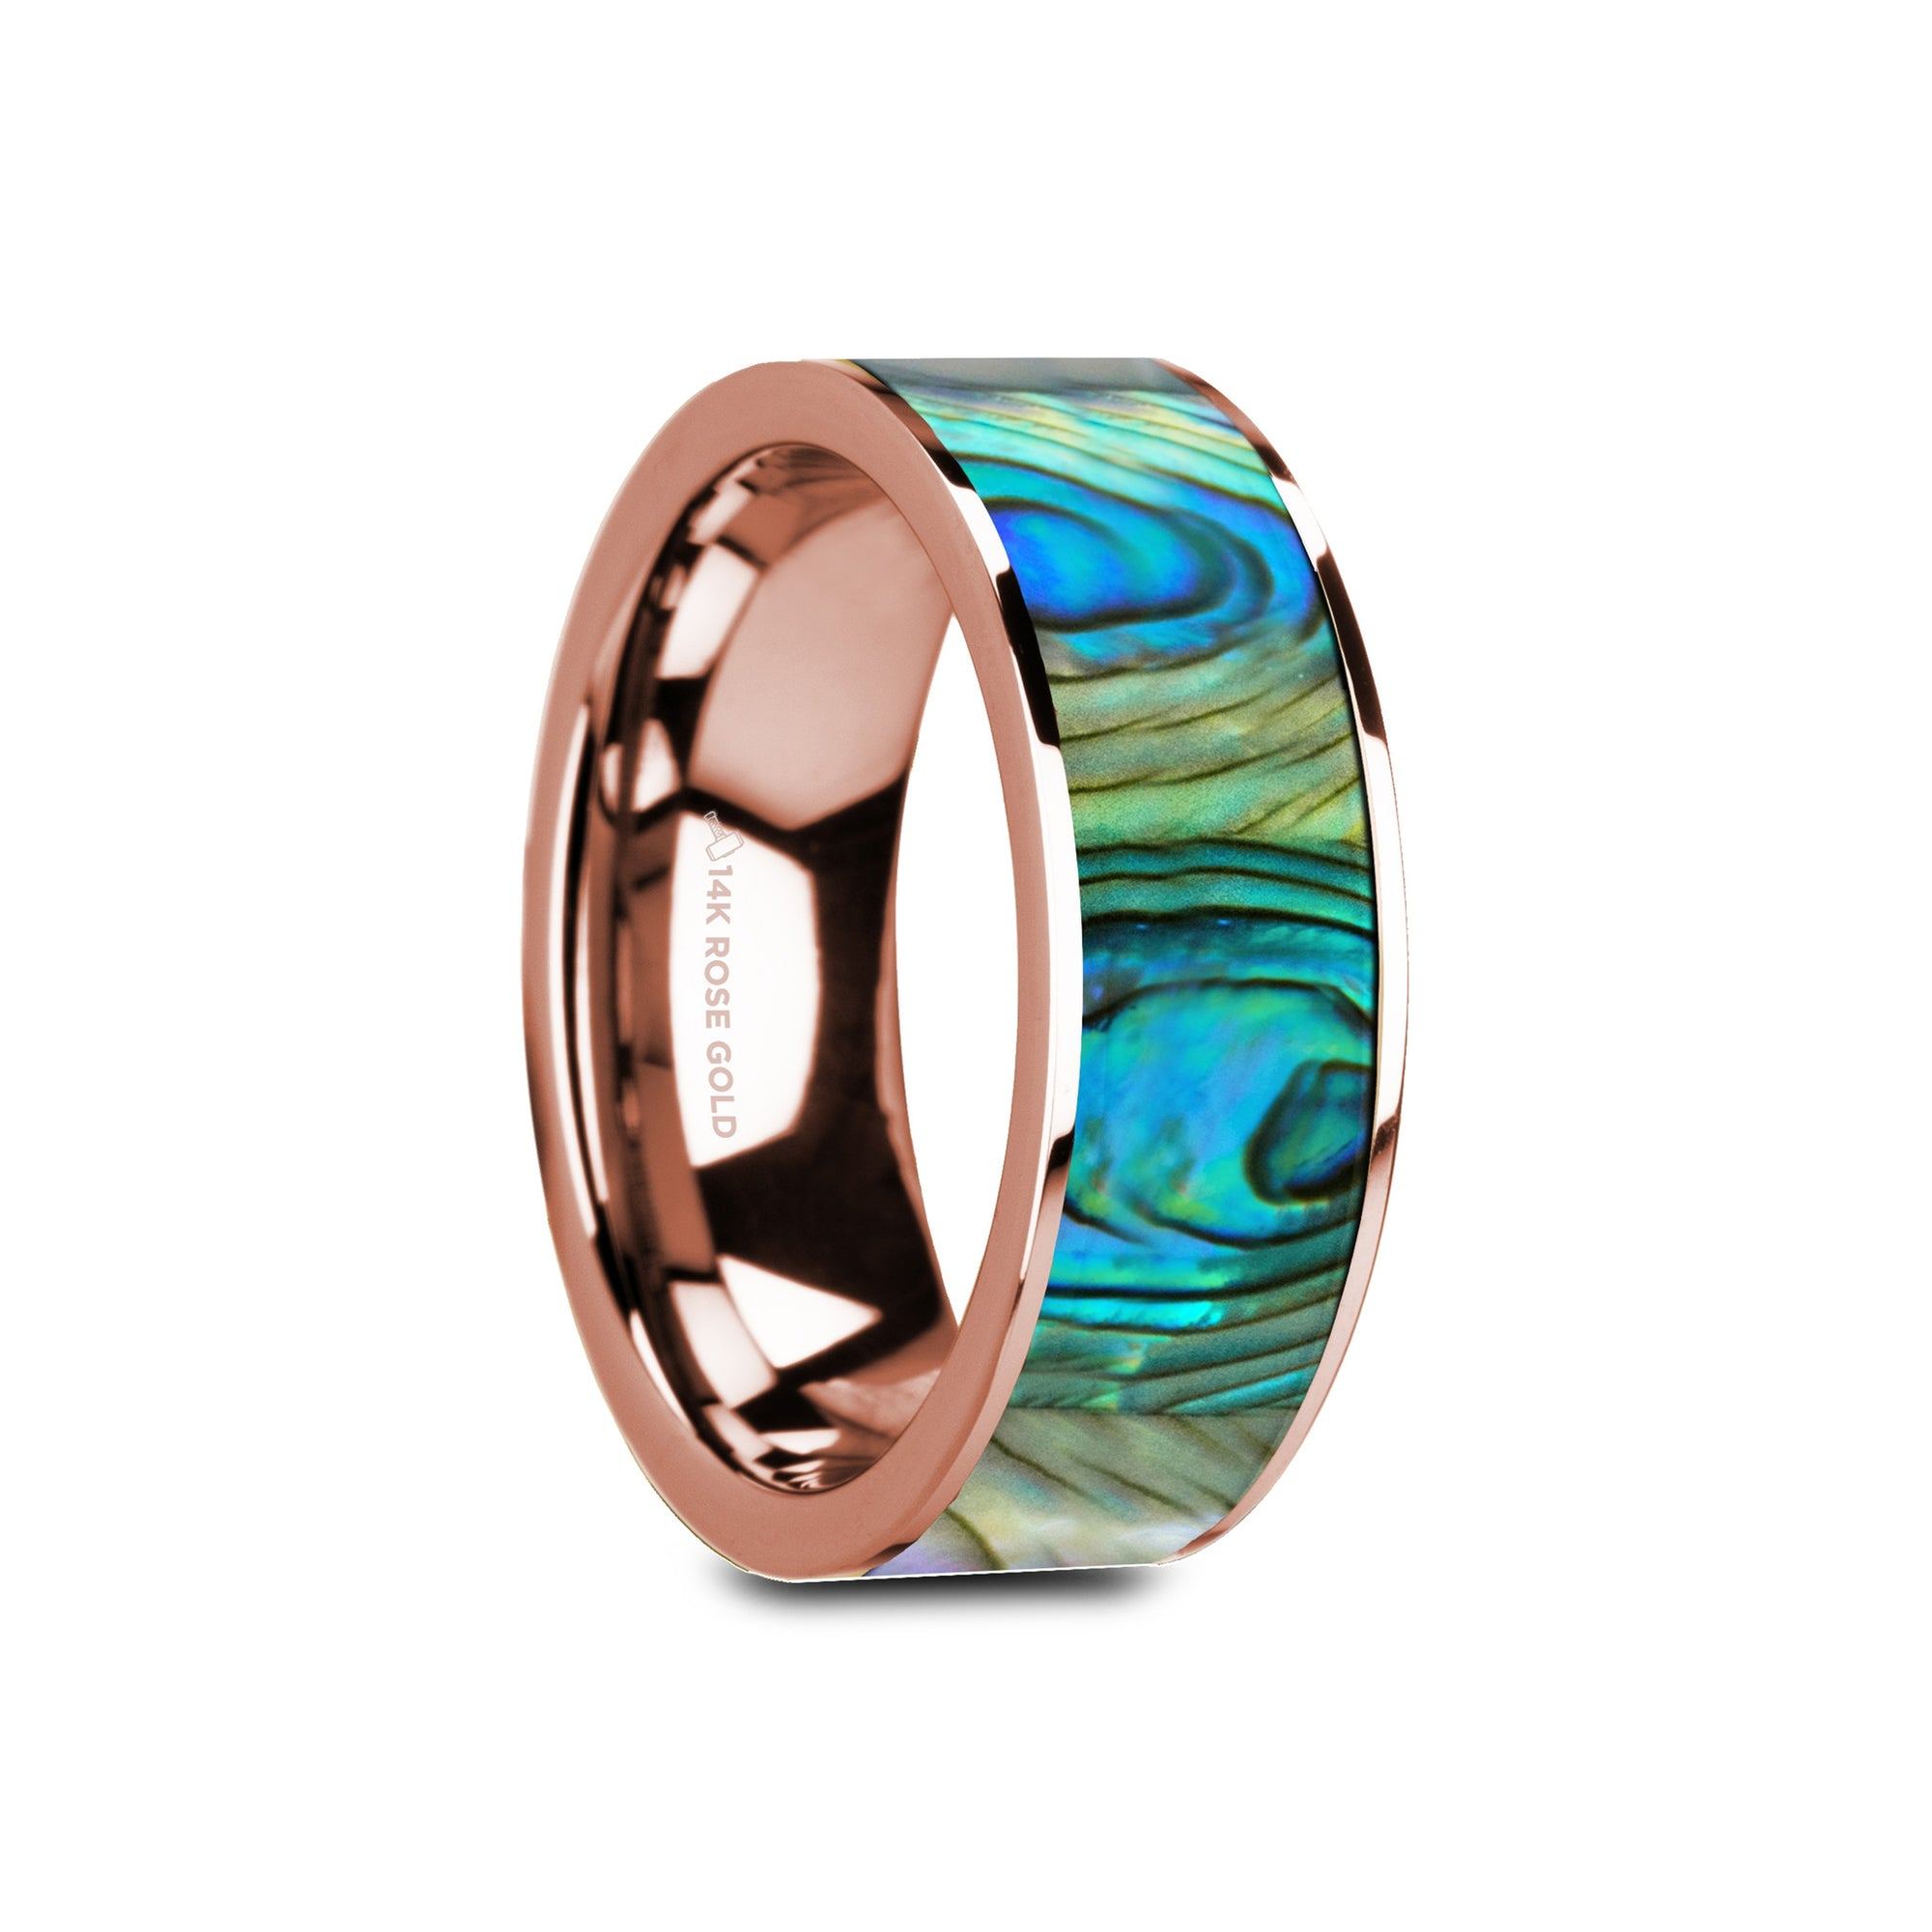 MENDOCINO | Rose Gold Wedding Ring | Mother of Pearl Inlay | 8mm - TCRings.com